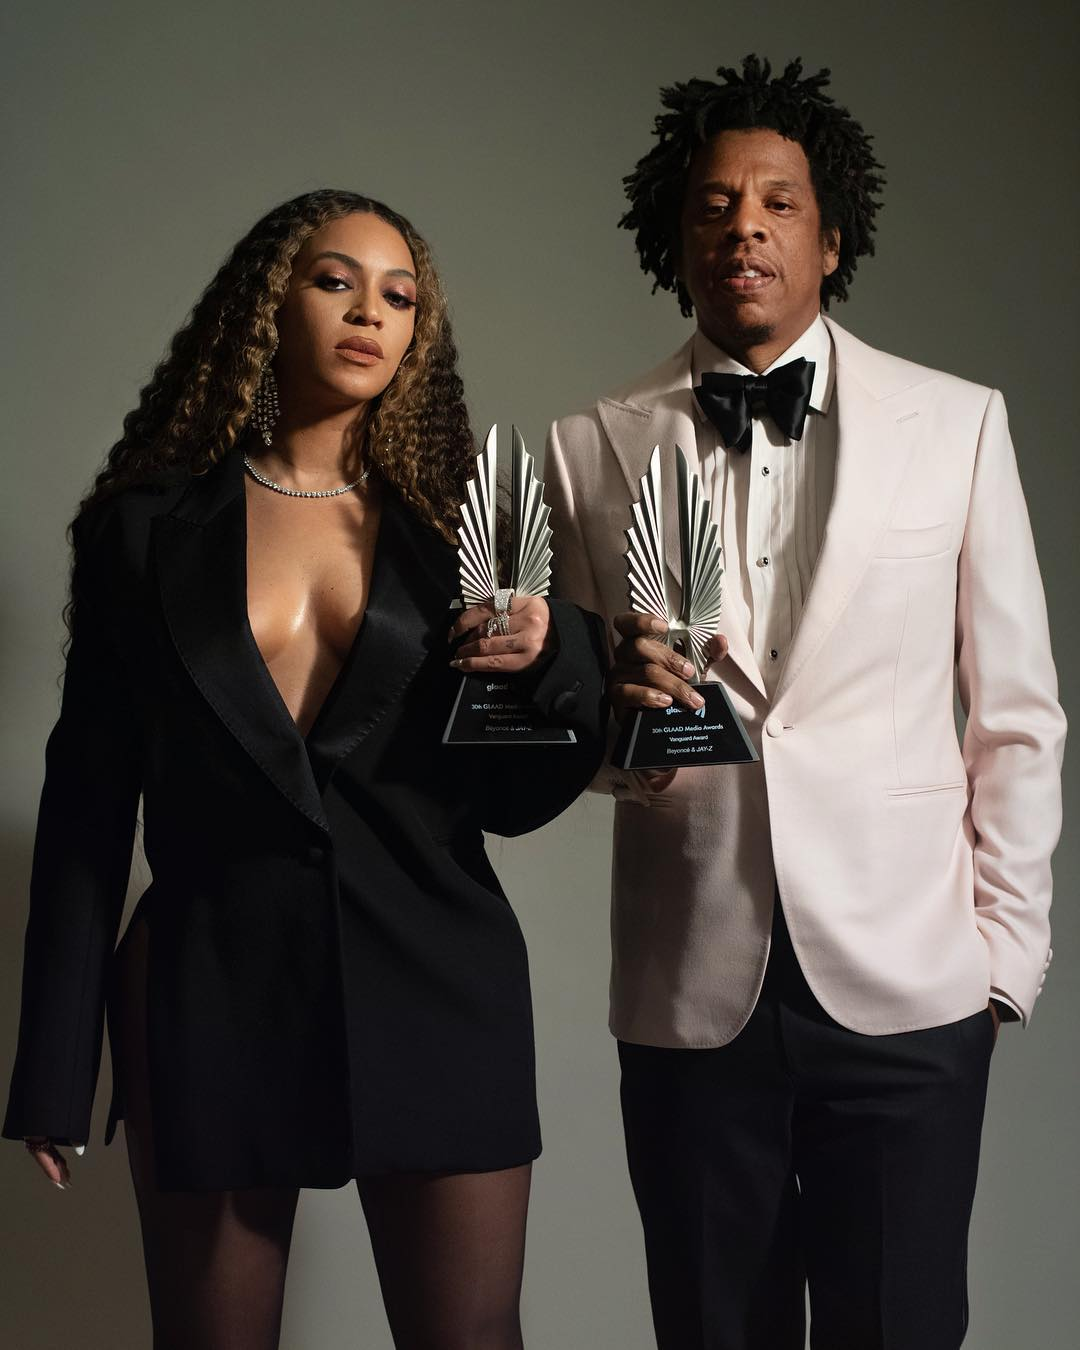 beyonce 1 - 'One of my baby's heart paused,' Beyonce talks about troubled pregnancy